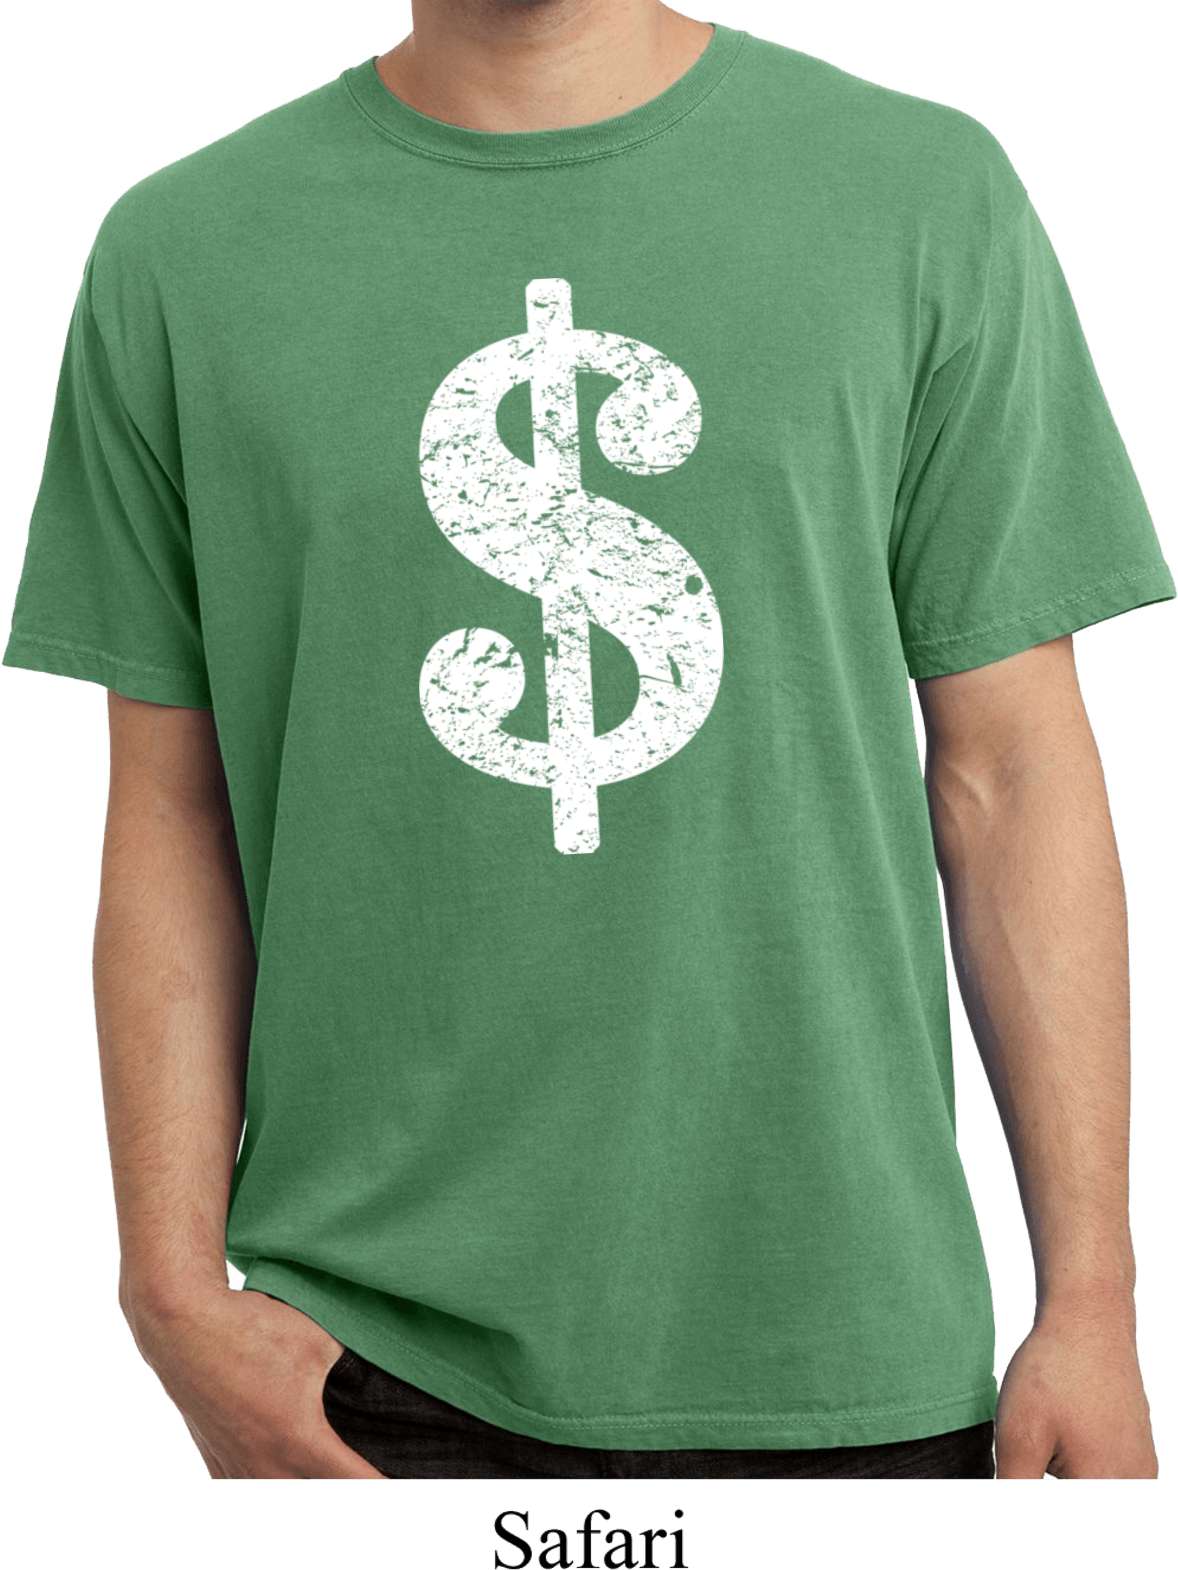 Even the fast food dollar menus are becoming a thing of the past. Don't worry though, because we still have you covered! We've got a whole bunch of t-shirts that you don't have to break the bank to wear.